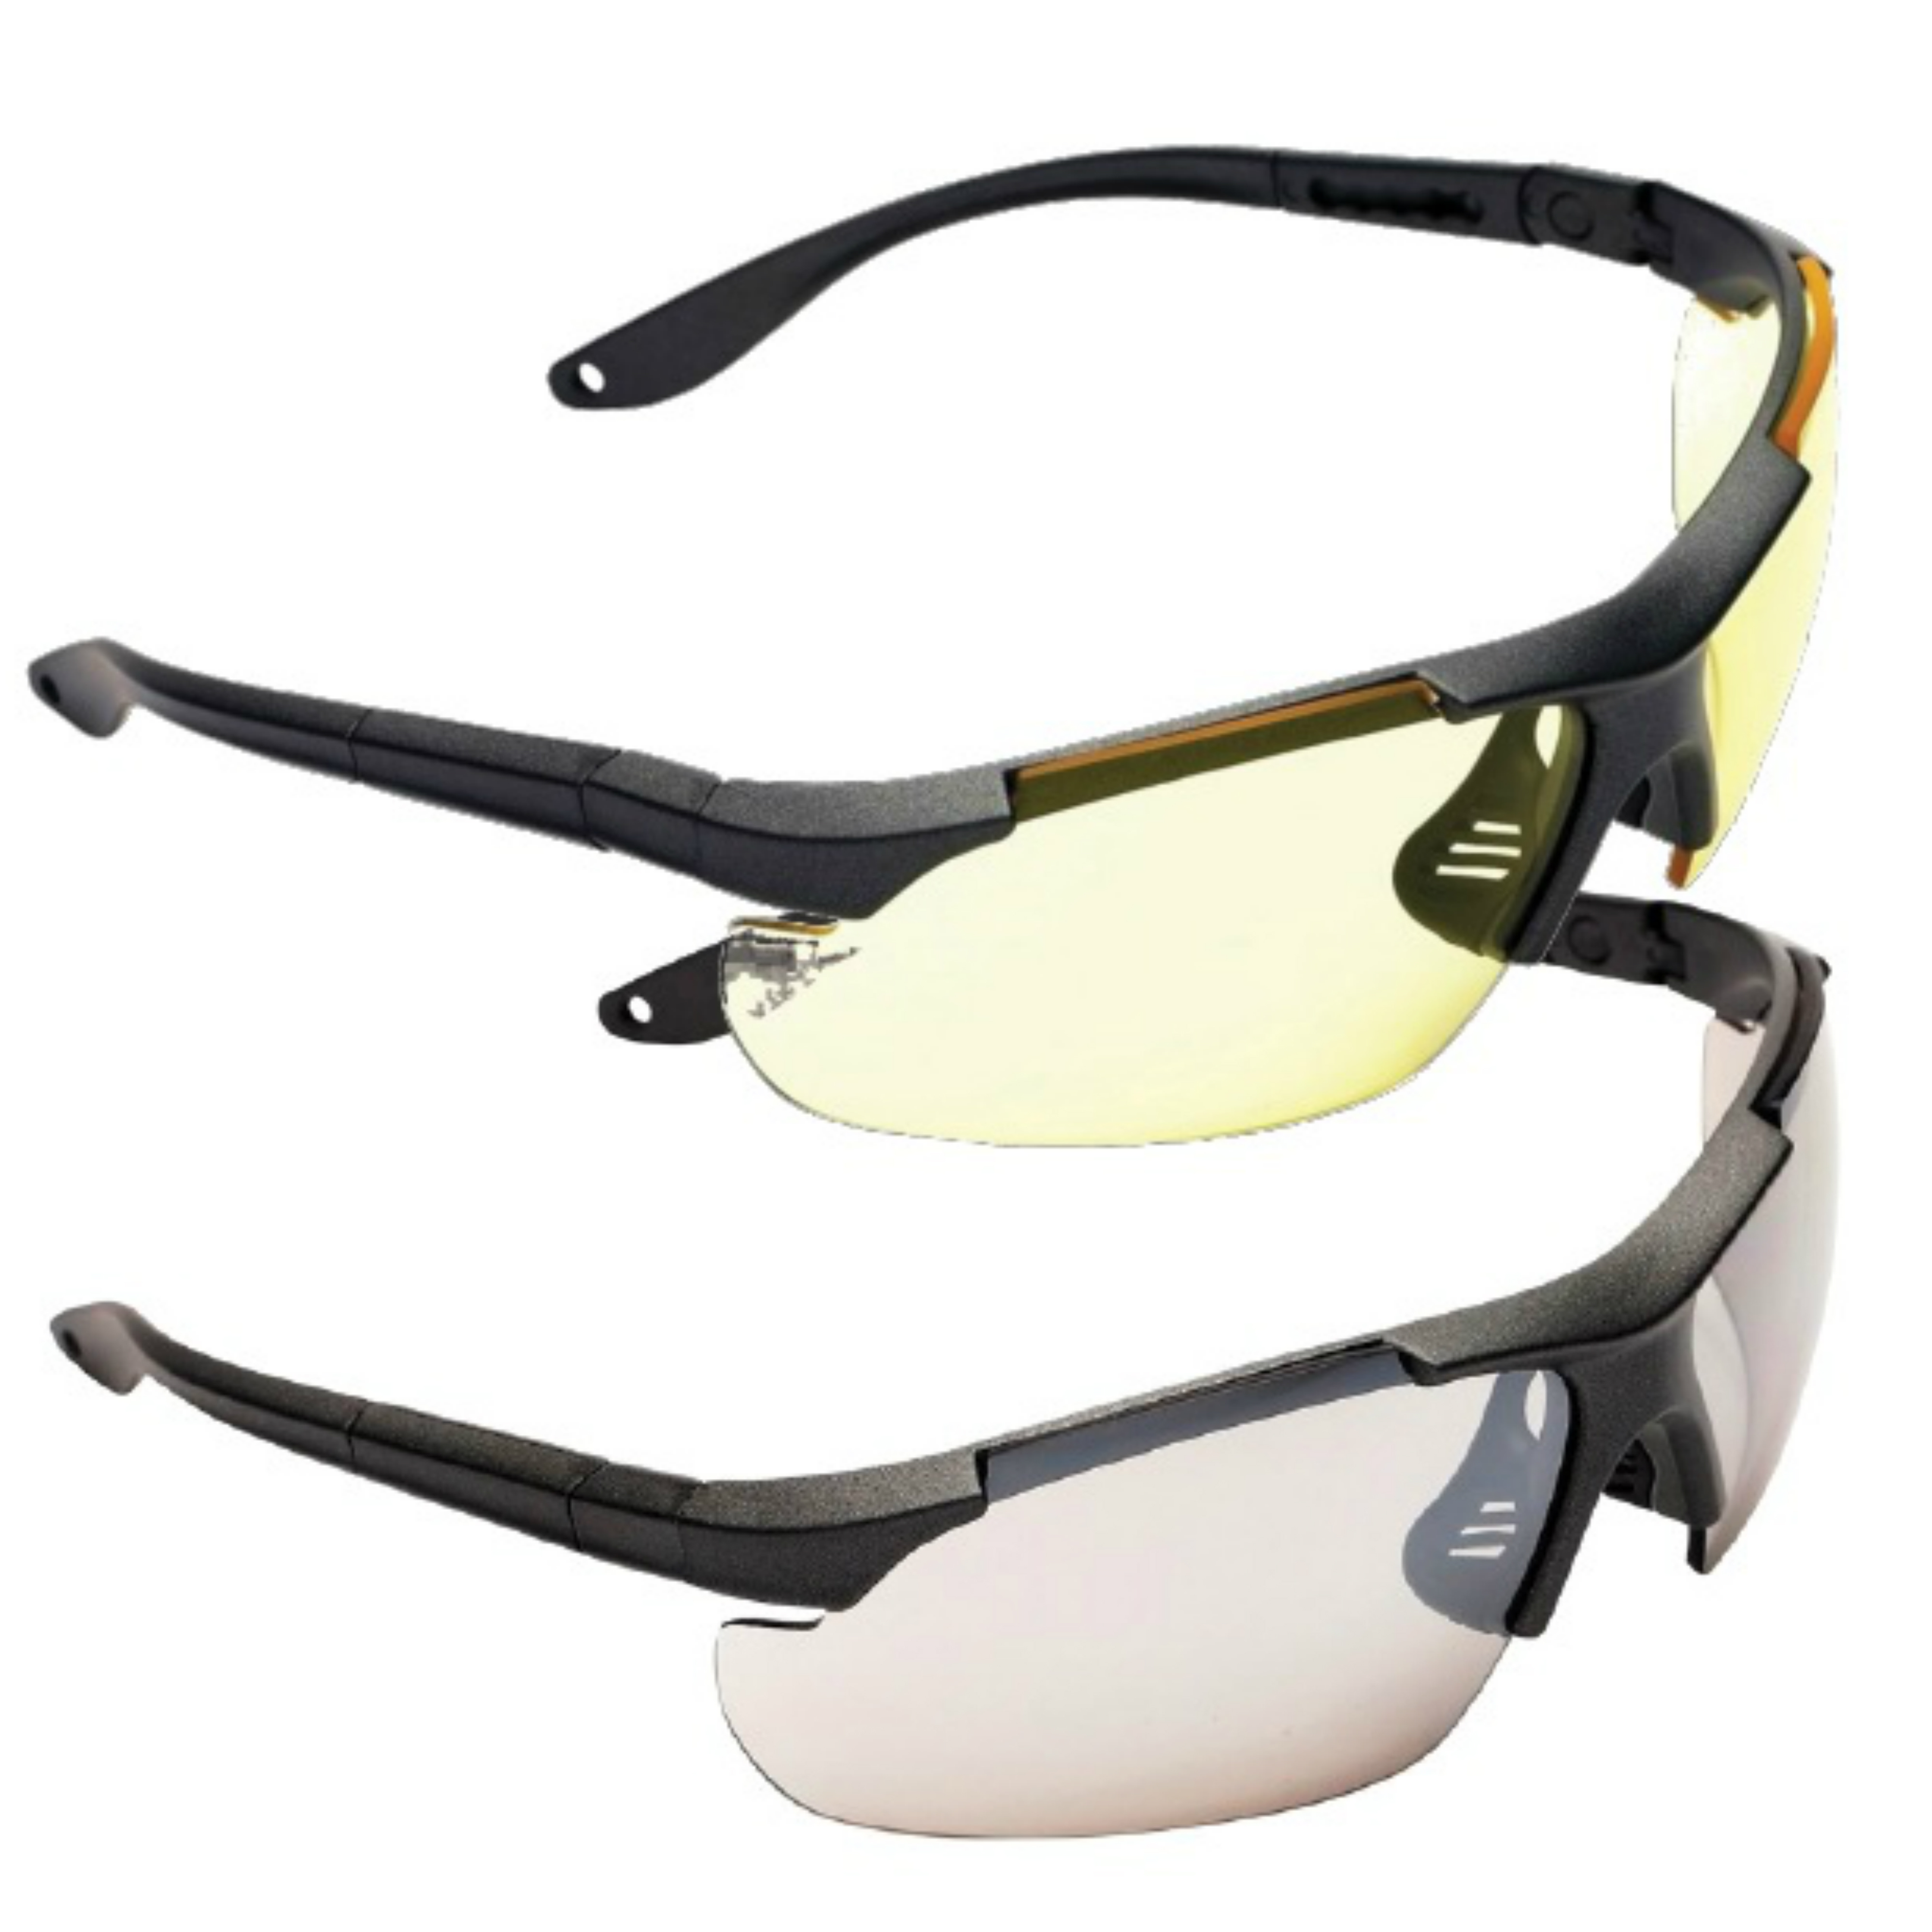 d9bb7b0a5eb Prochoice® Typhoon Safety Glasses Indoor Outdoor Lens - Handling ...